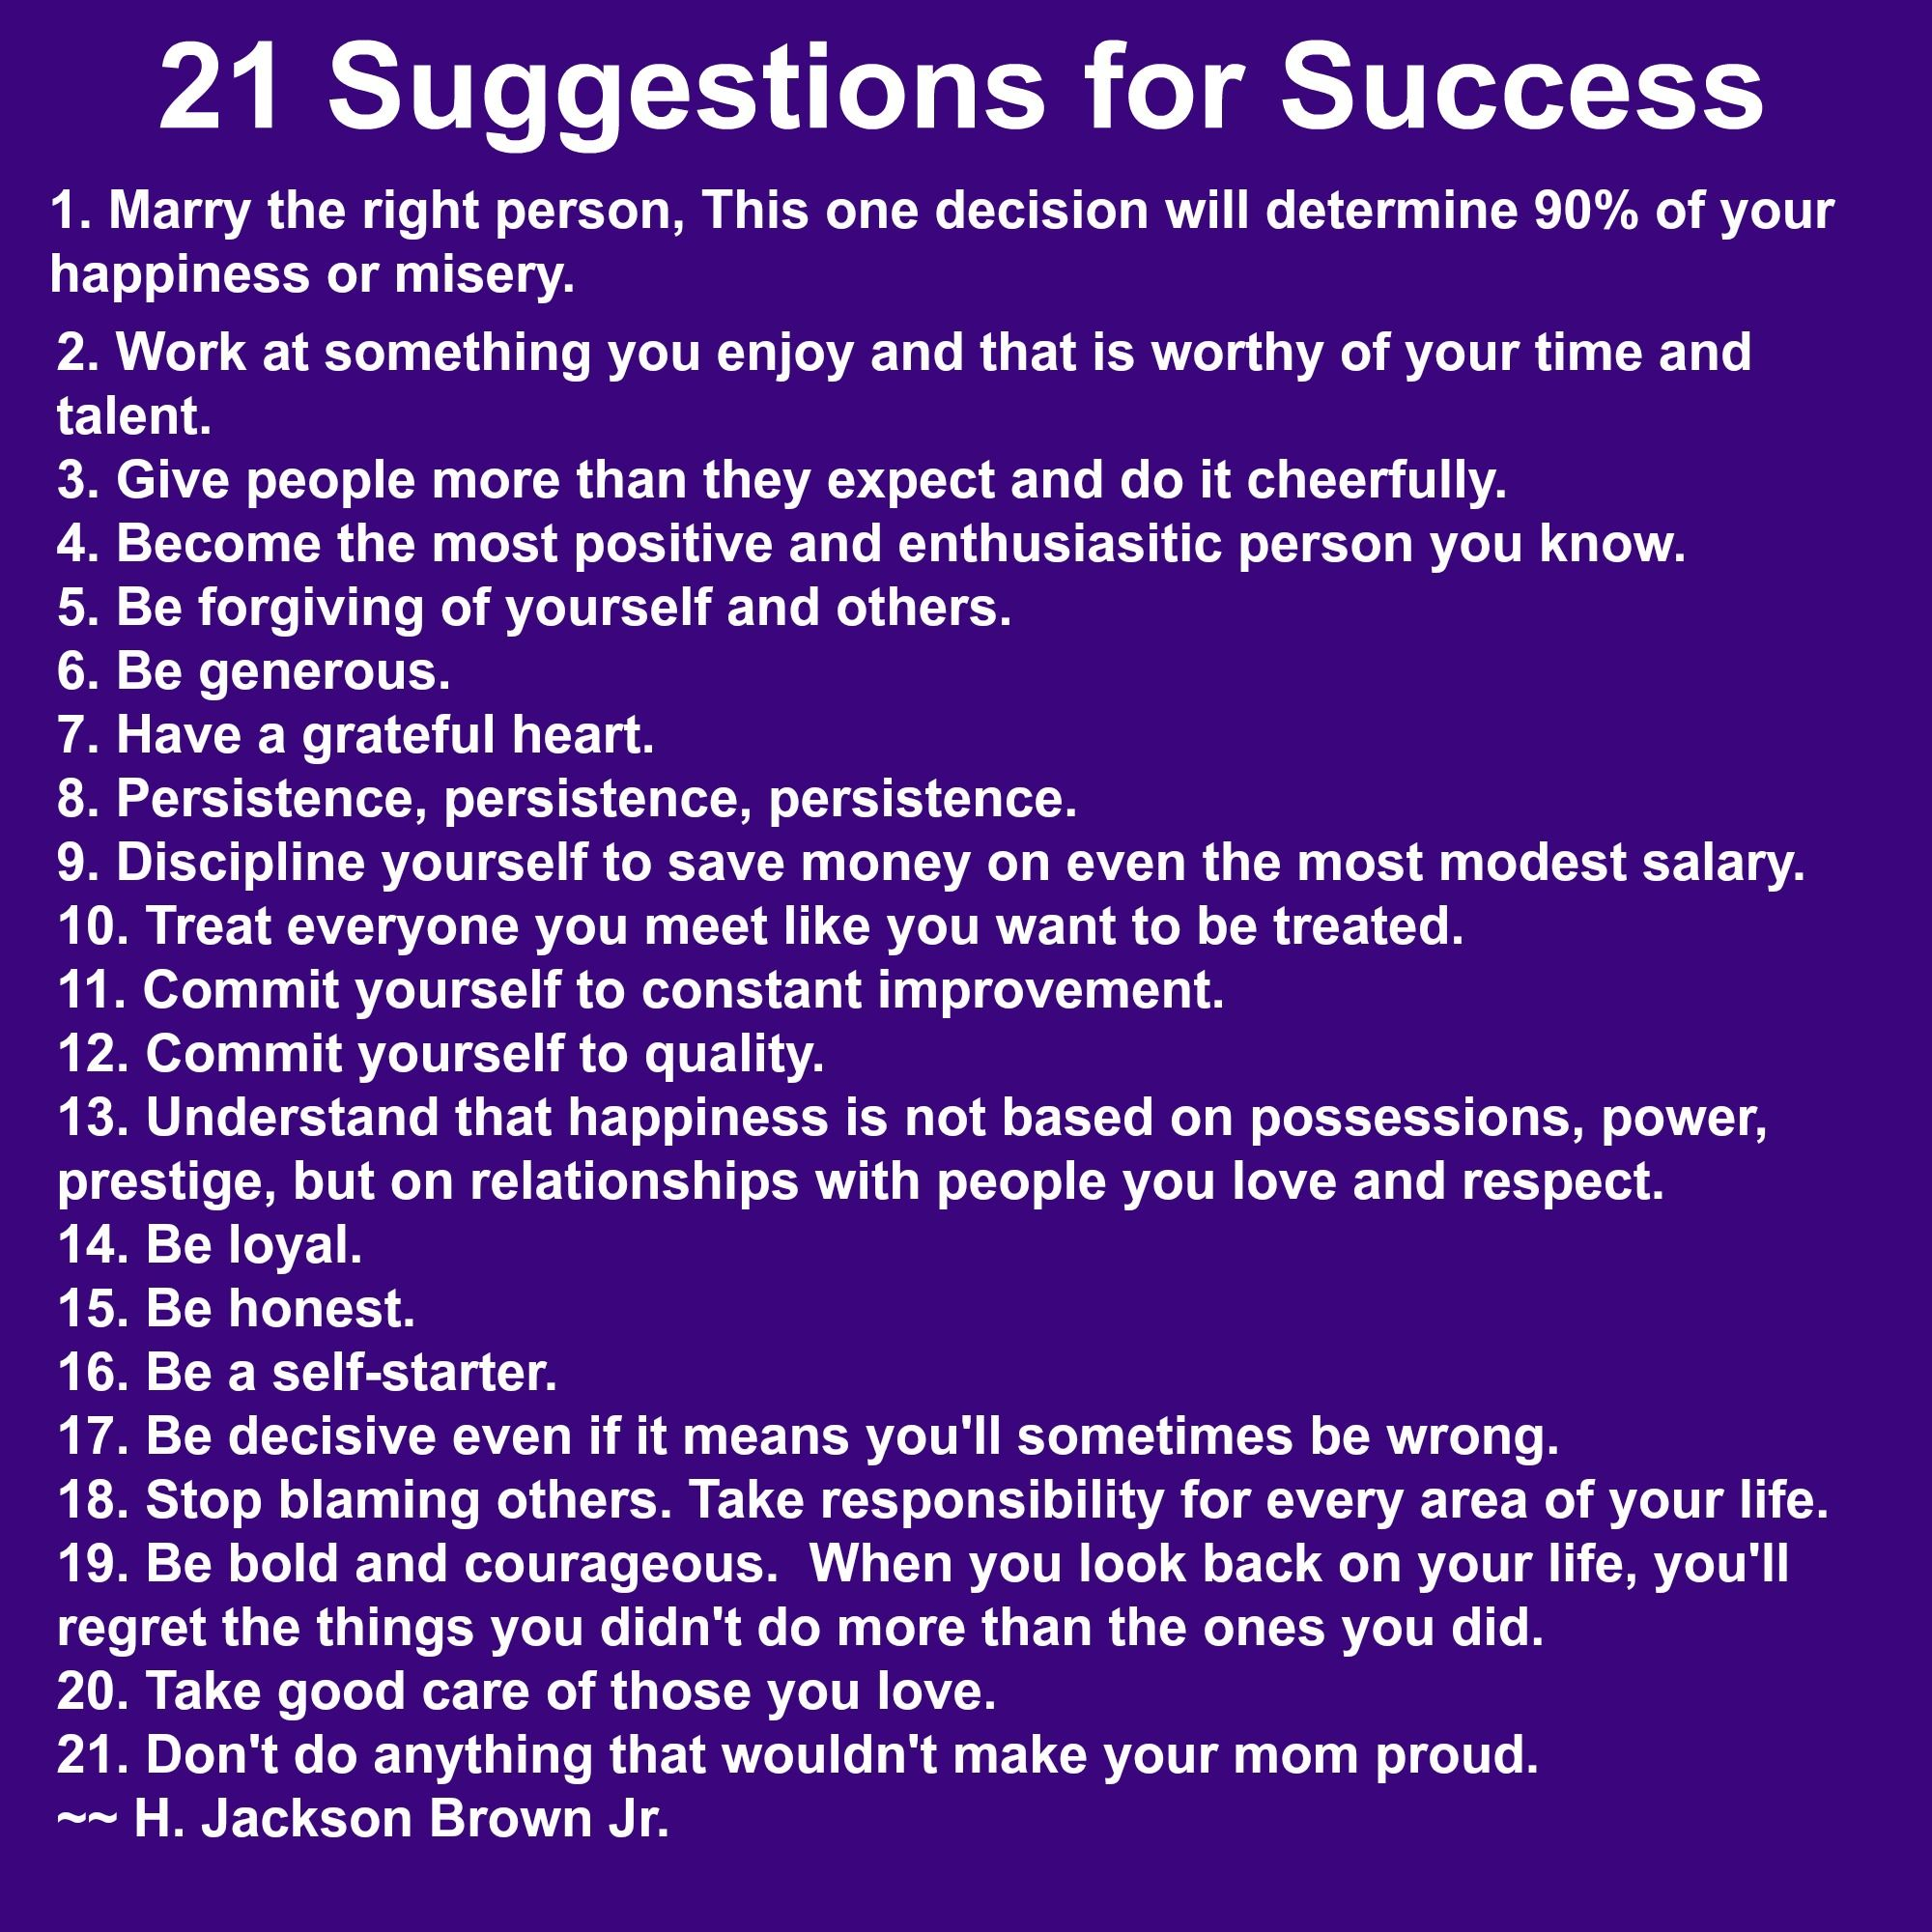 21 suggestions for success how many do you connect with